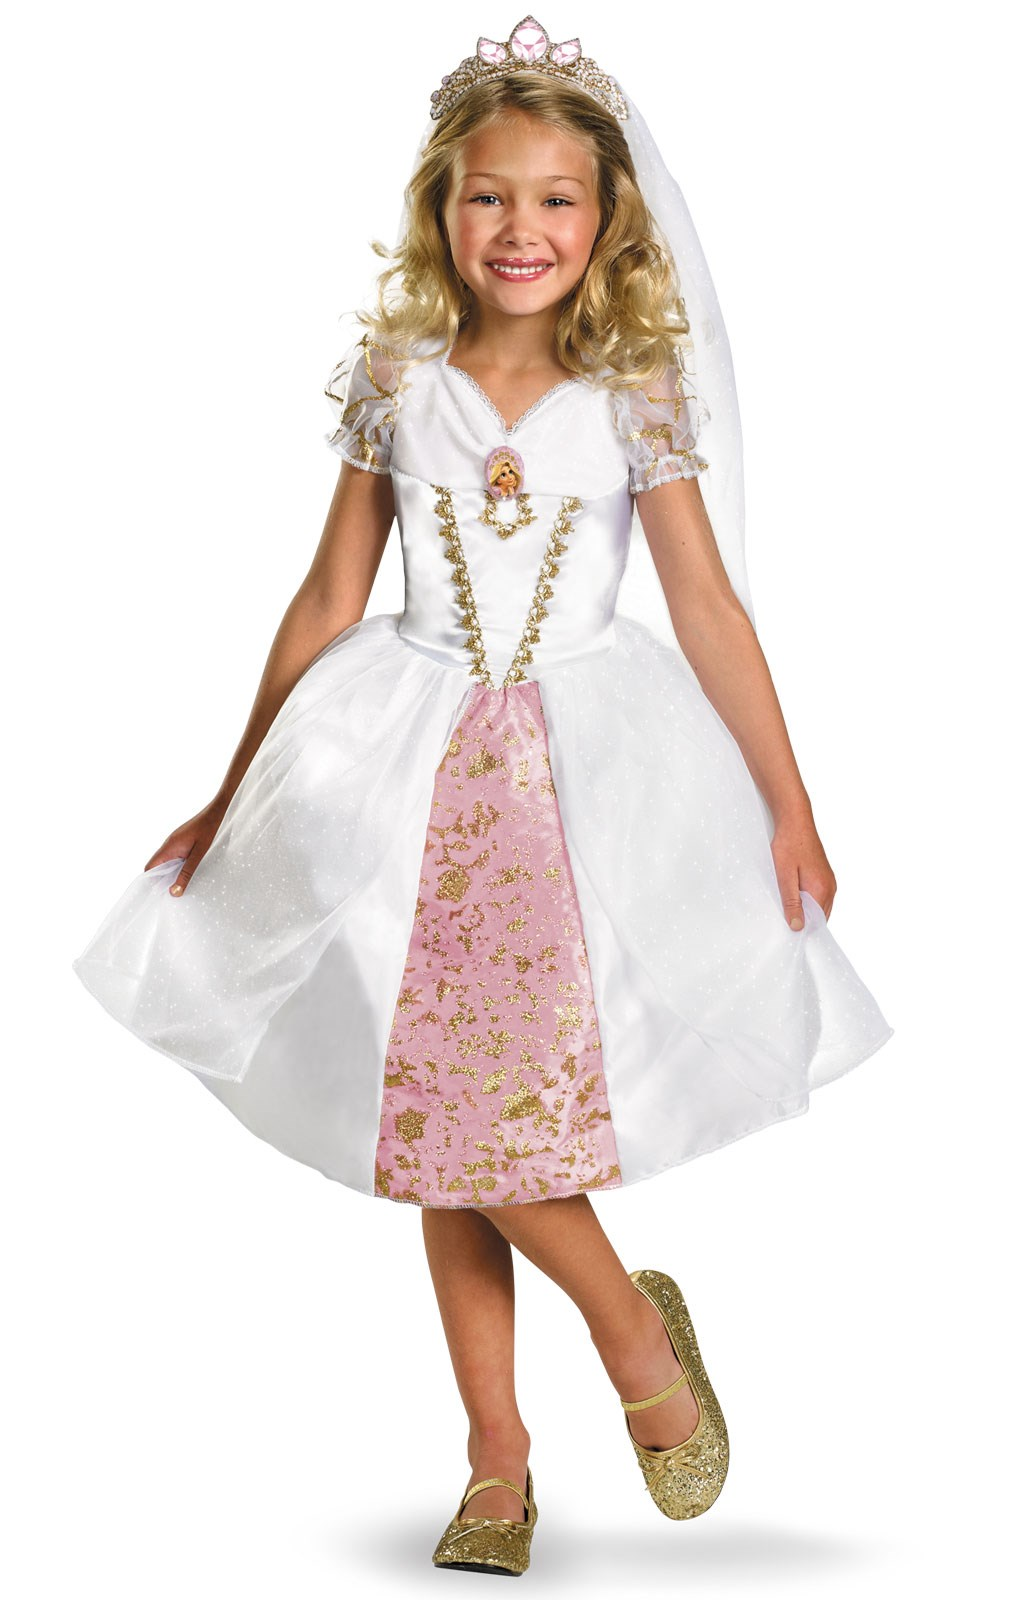 Disney Tangled Rapunzel Wedding Gown Toddler Costume | BuyCostumes.com